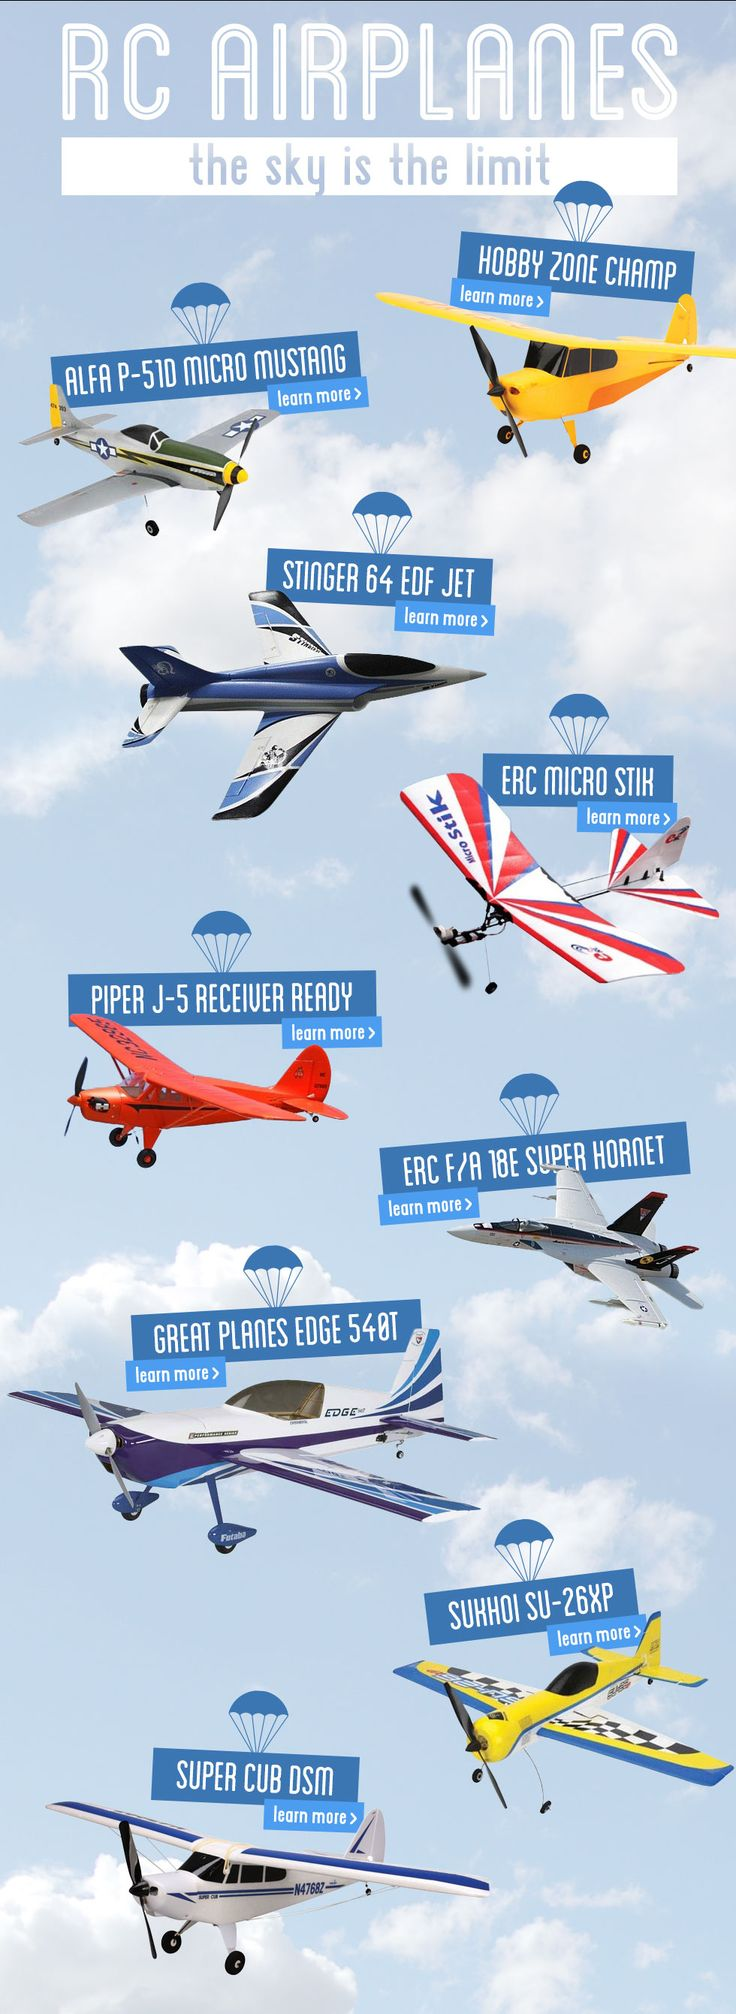 Remote Control Airplanes Review 2013 | Best RC Planes | Remote Control Planes - TopTenREVIEWS